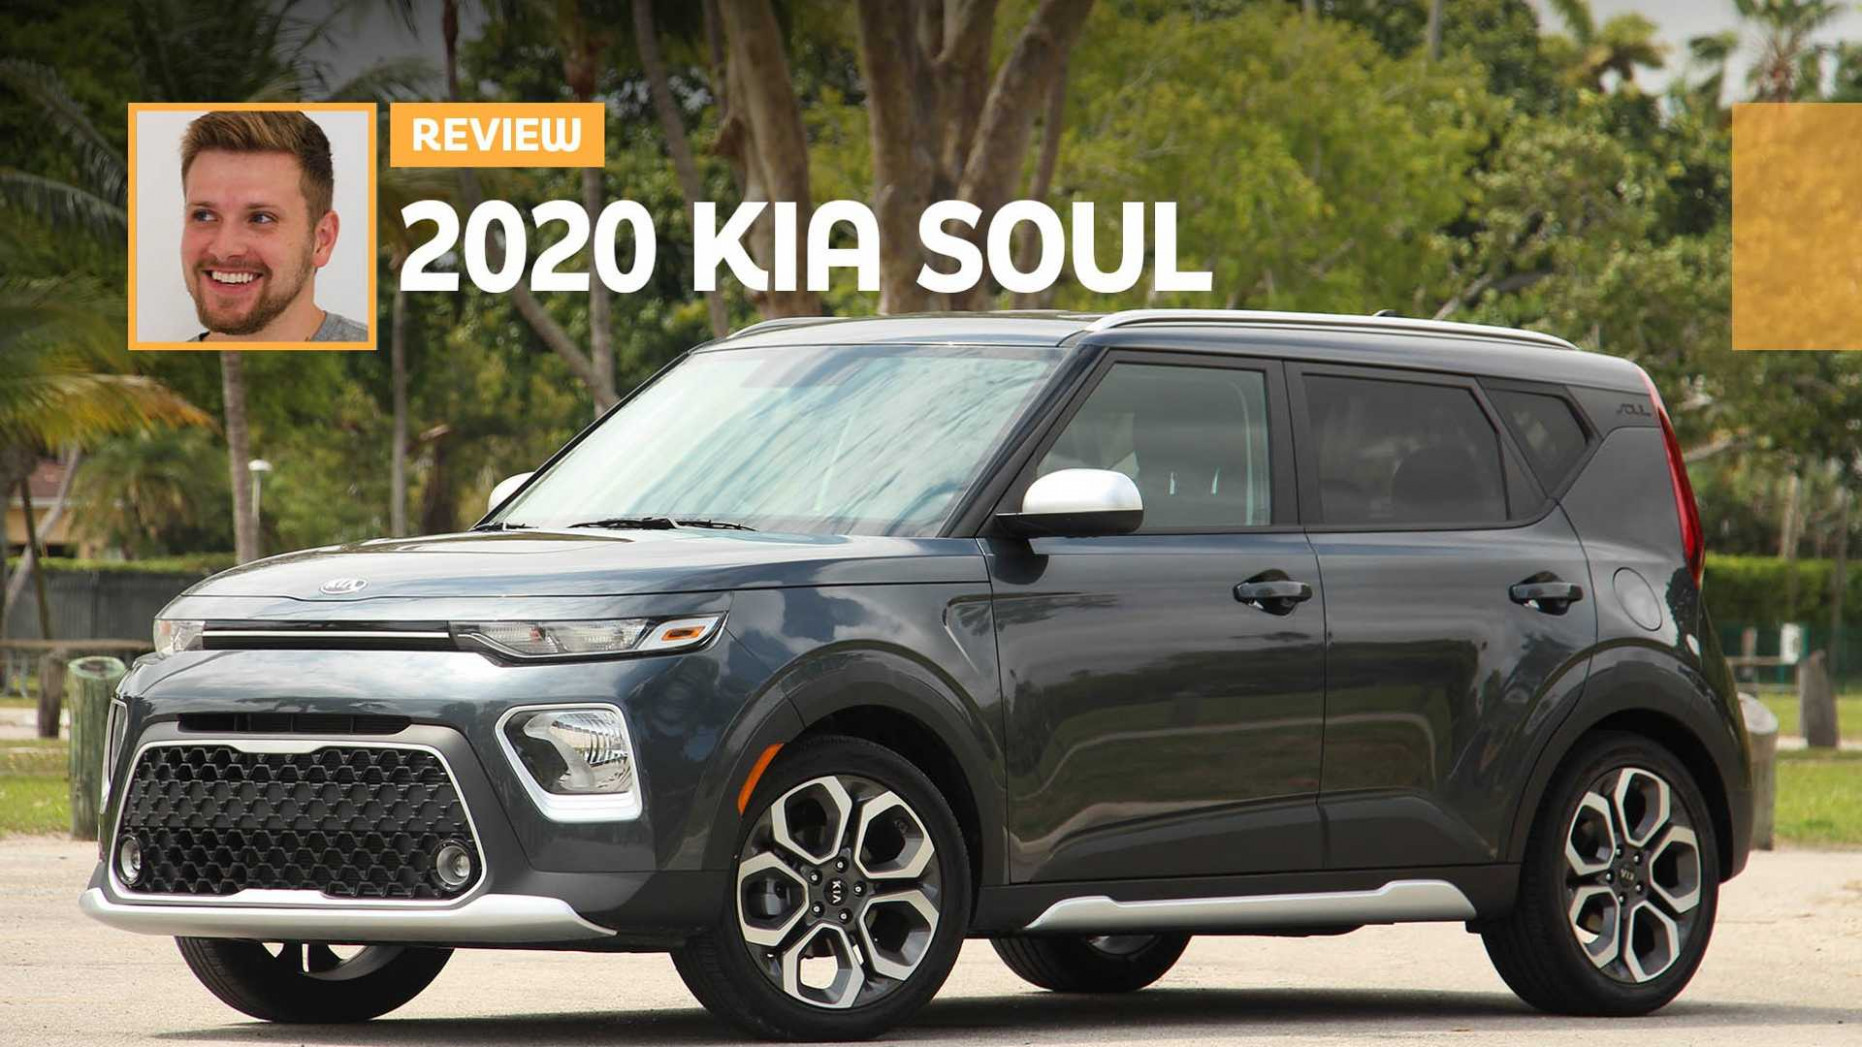 8 Kia Soul X-Line Review: Thinking Outside The Box